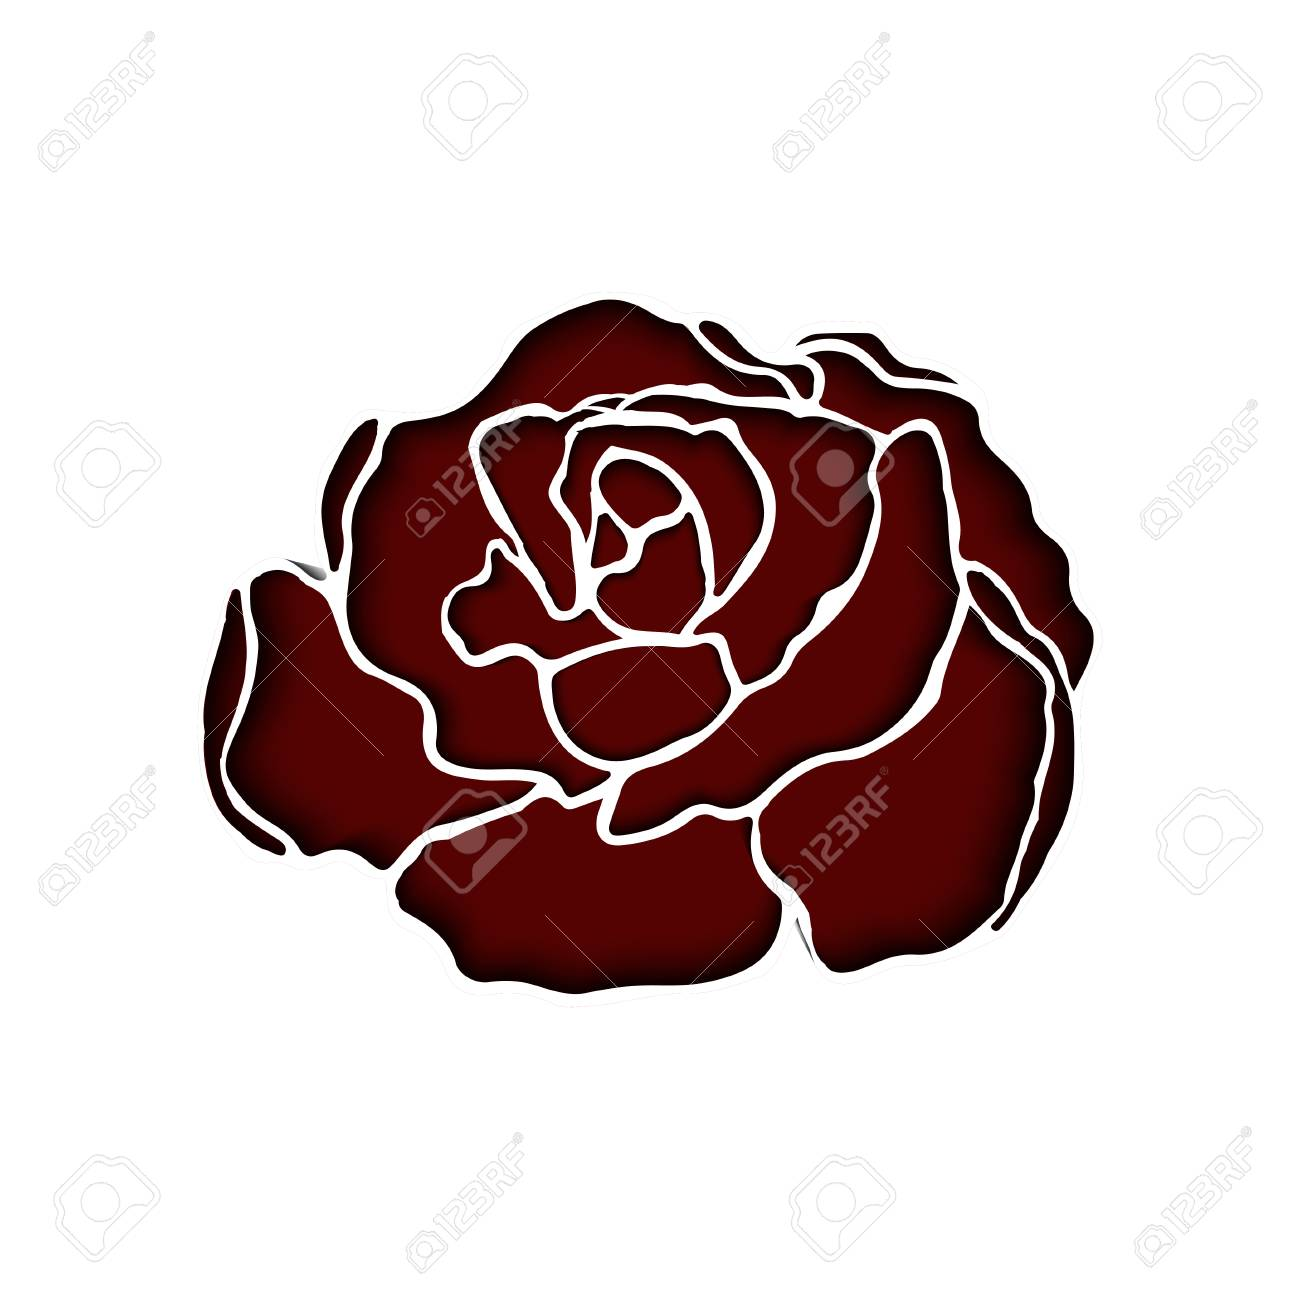 Red Paper Cut Rose For Backgrounds, Cards, Invitations, Valentines ...